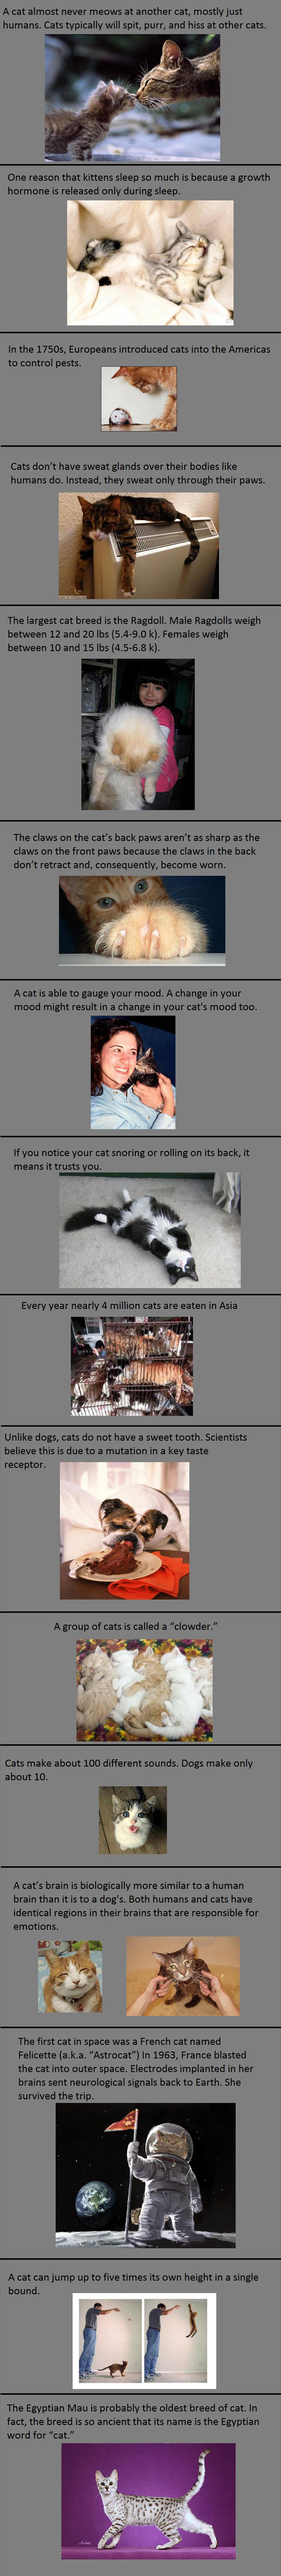 Interesting cat facts…